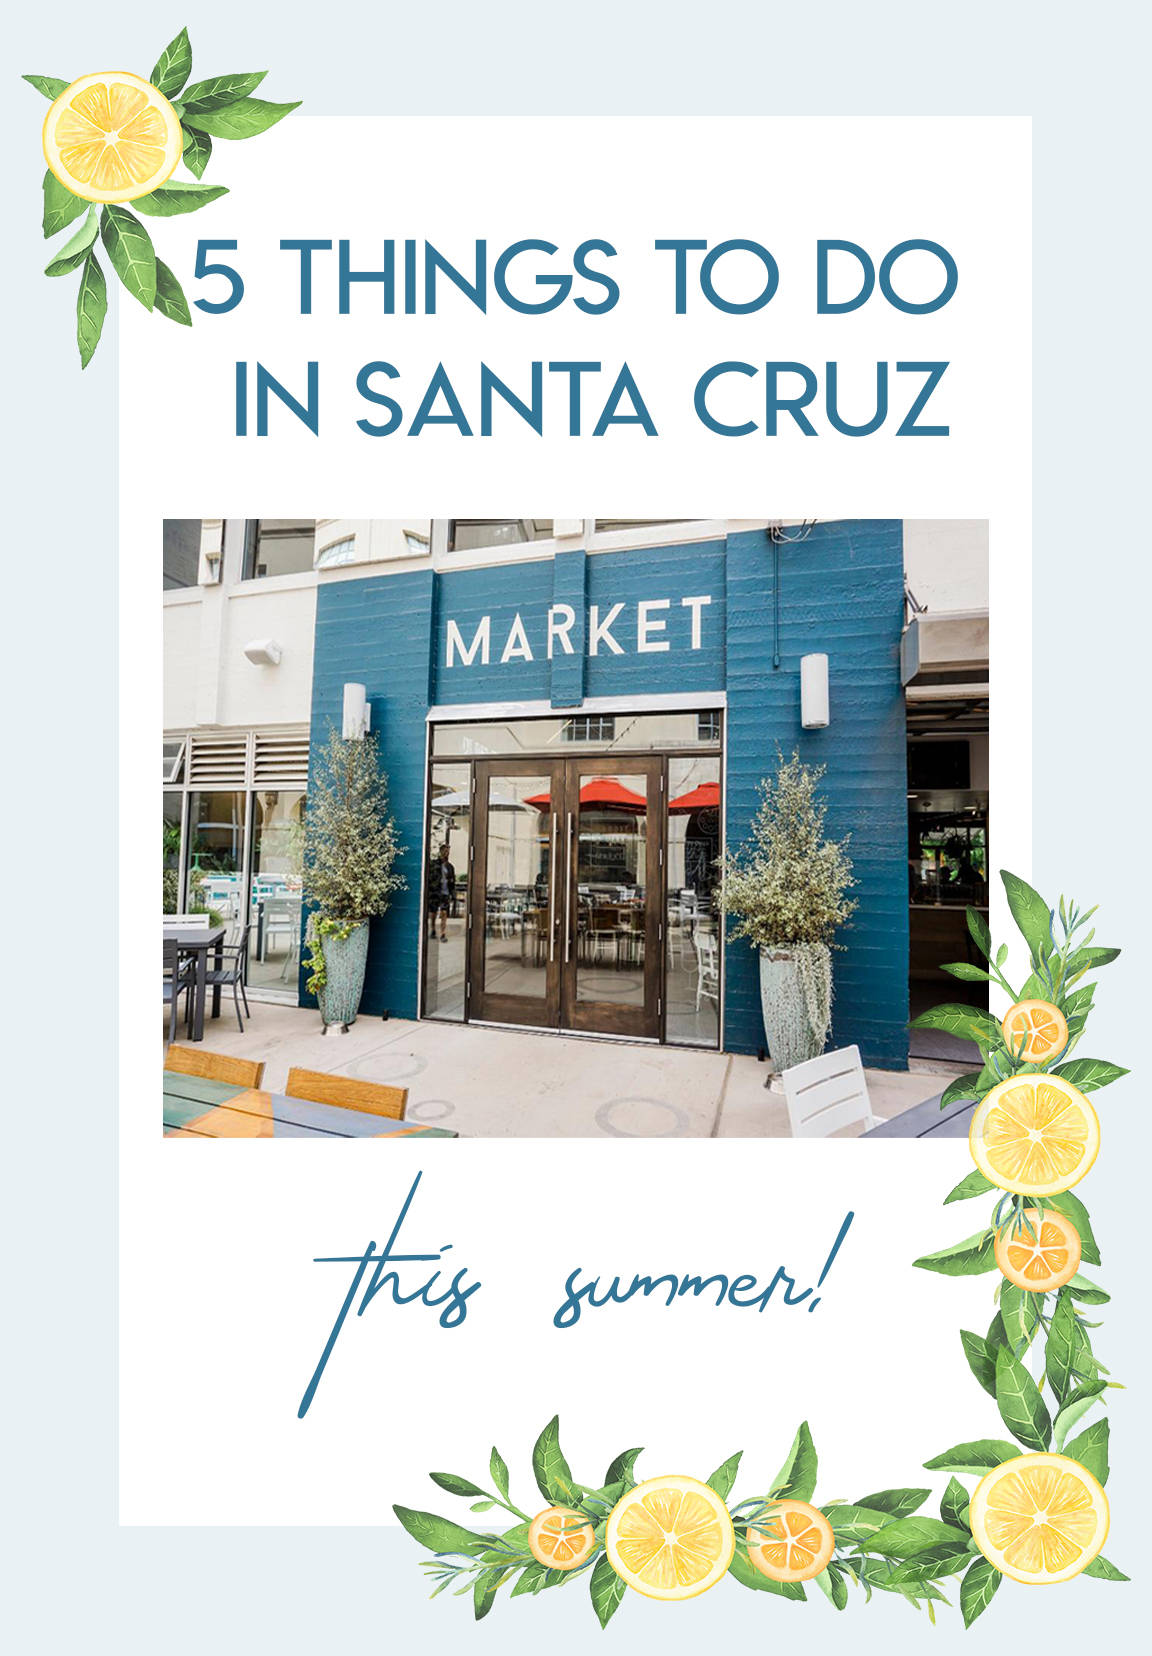 5 Things To Do In Santa Cruz